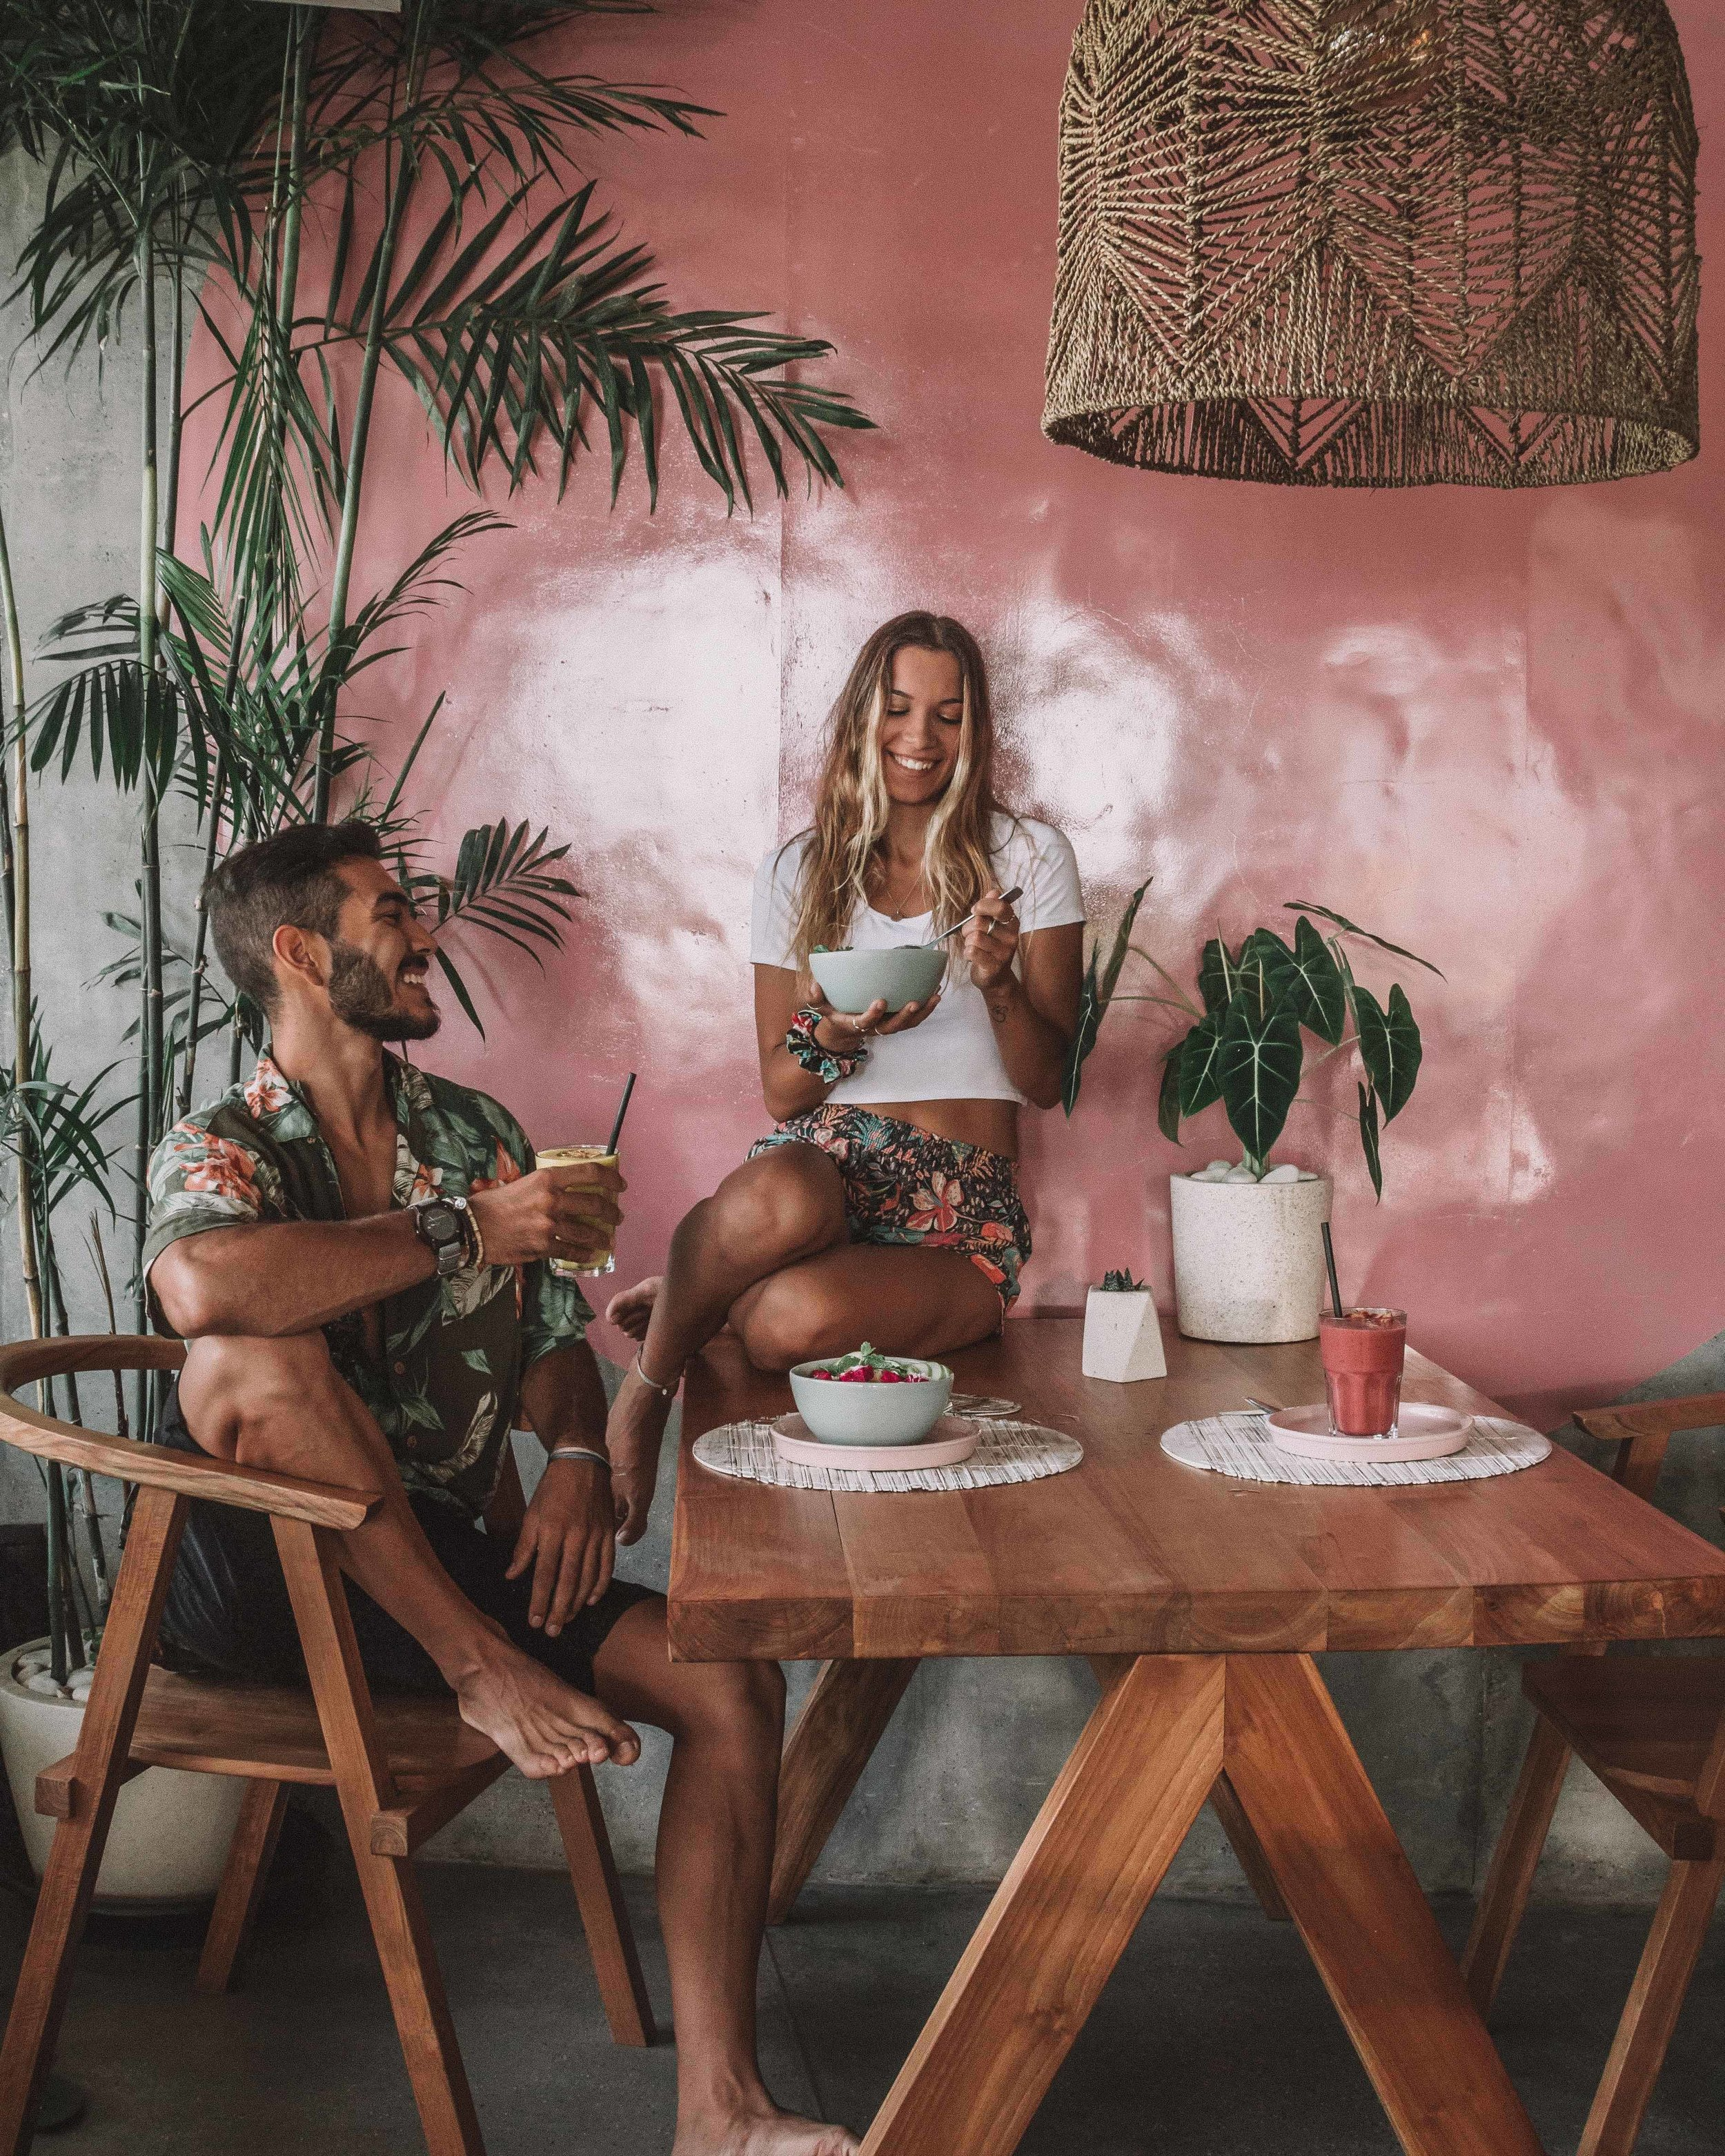 missibu bali breakfast lunch dinner best places canggu bali photography freeoversea couple lifestyle smoothies